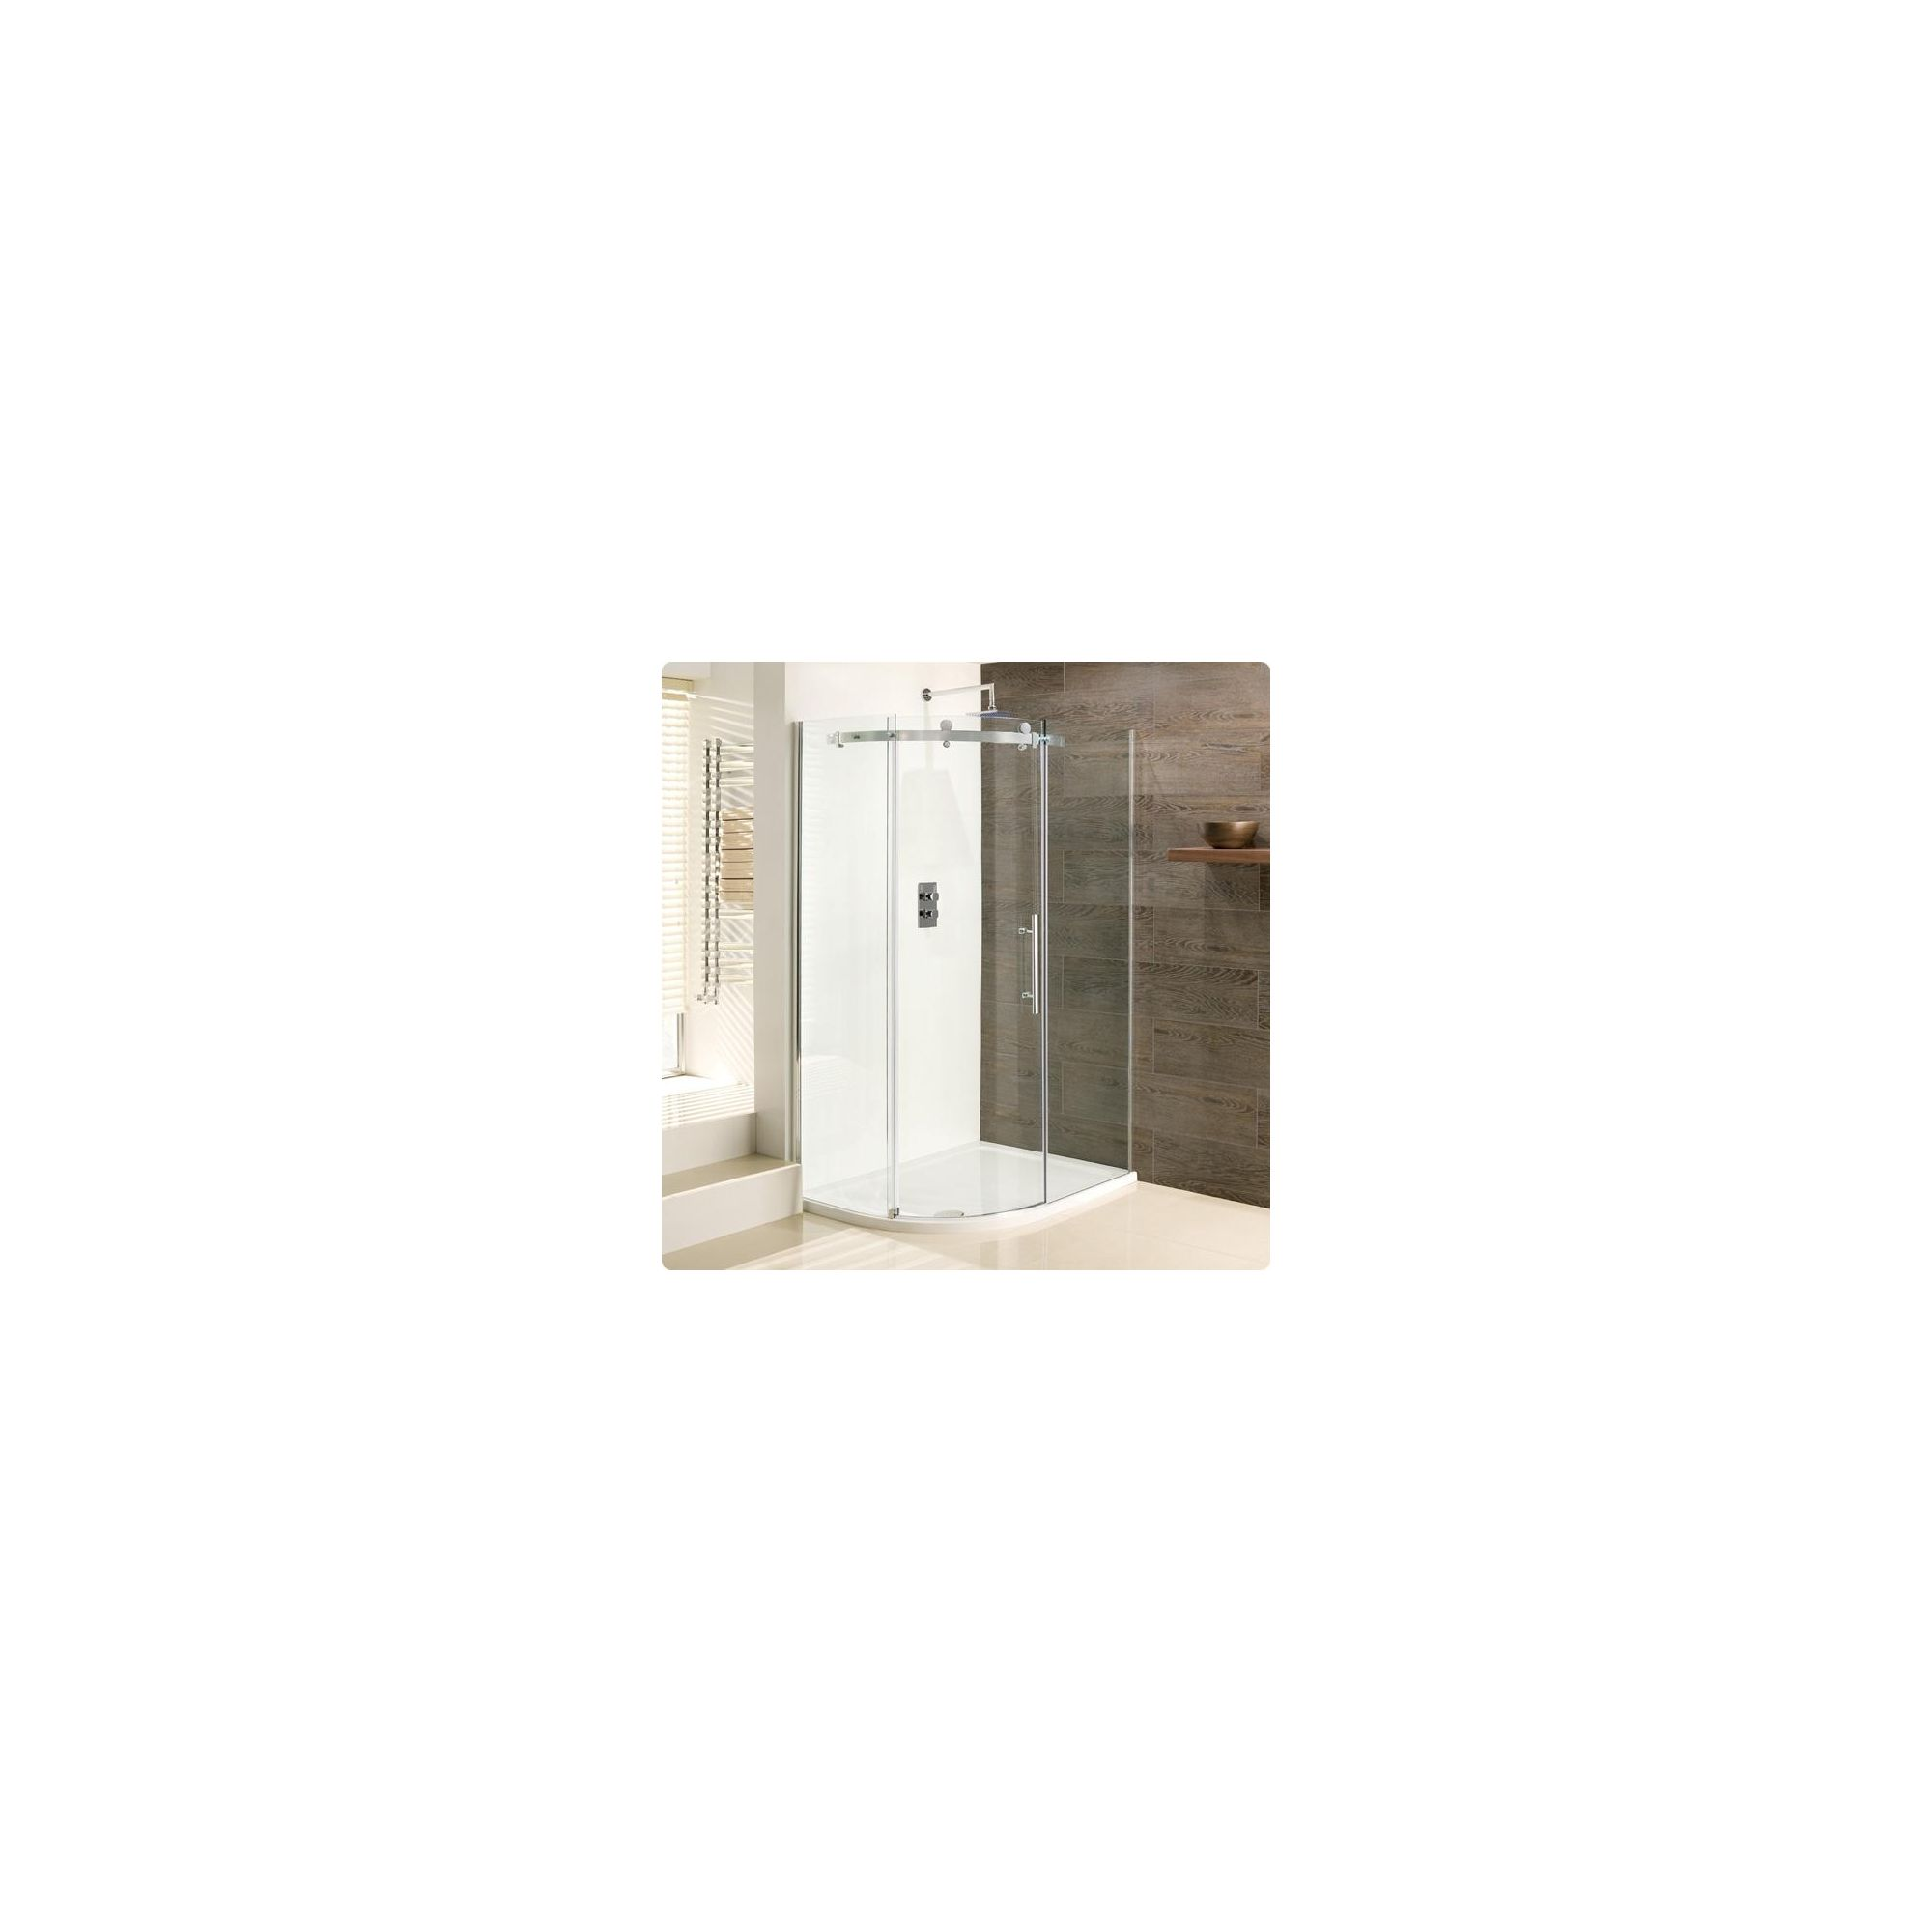 Duchy Deluxe Silver Offset Quadrant Shower Enclosure 1200mm x 800mm (Complete with Tray), 10mm Glass at Tesco Direct